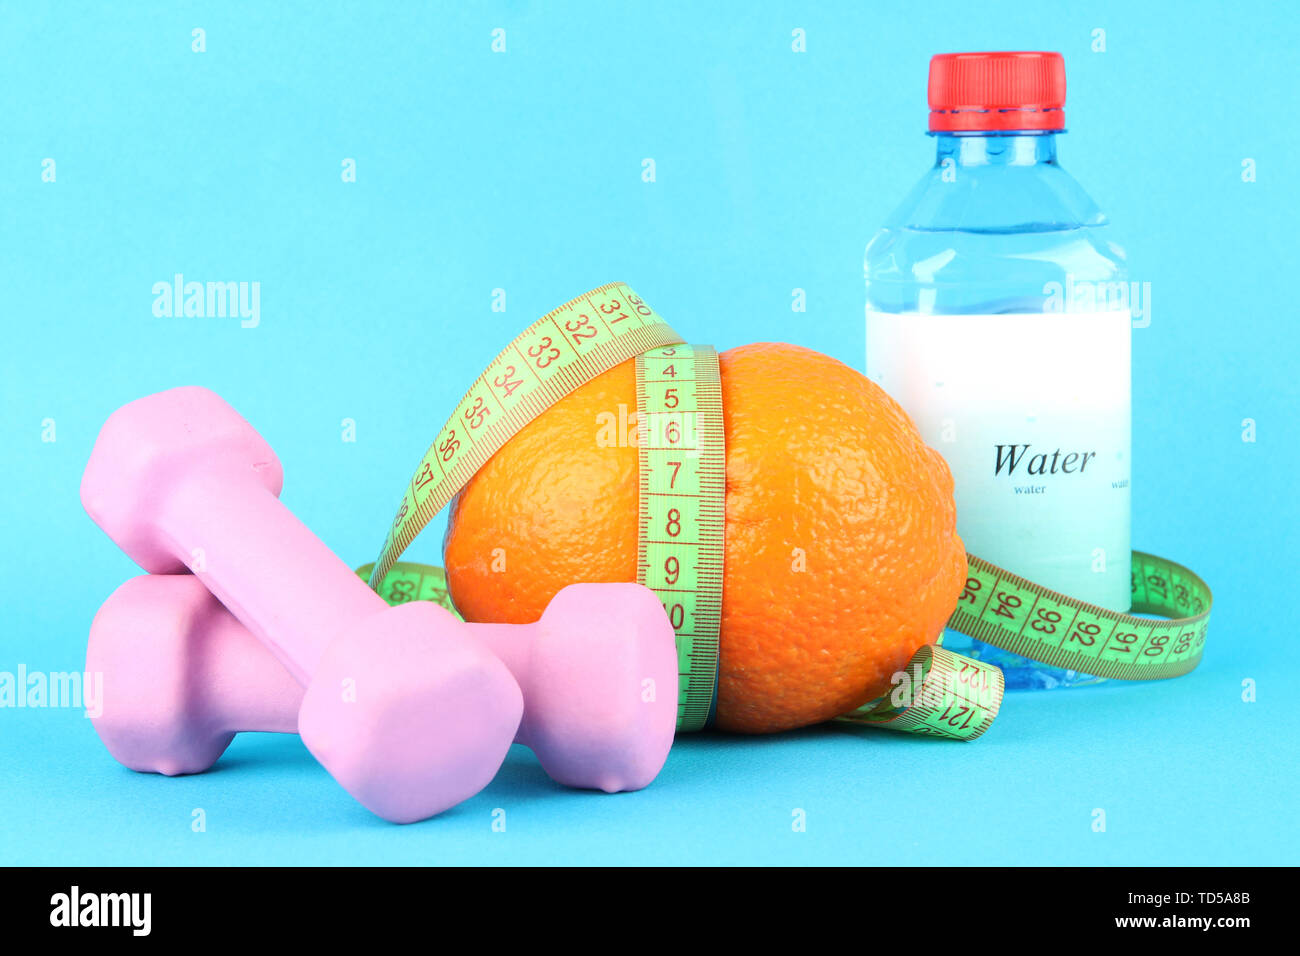 Orange with measuring tape, dumbbells and bottle of water, on color background - Stock Image